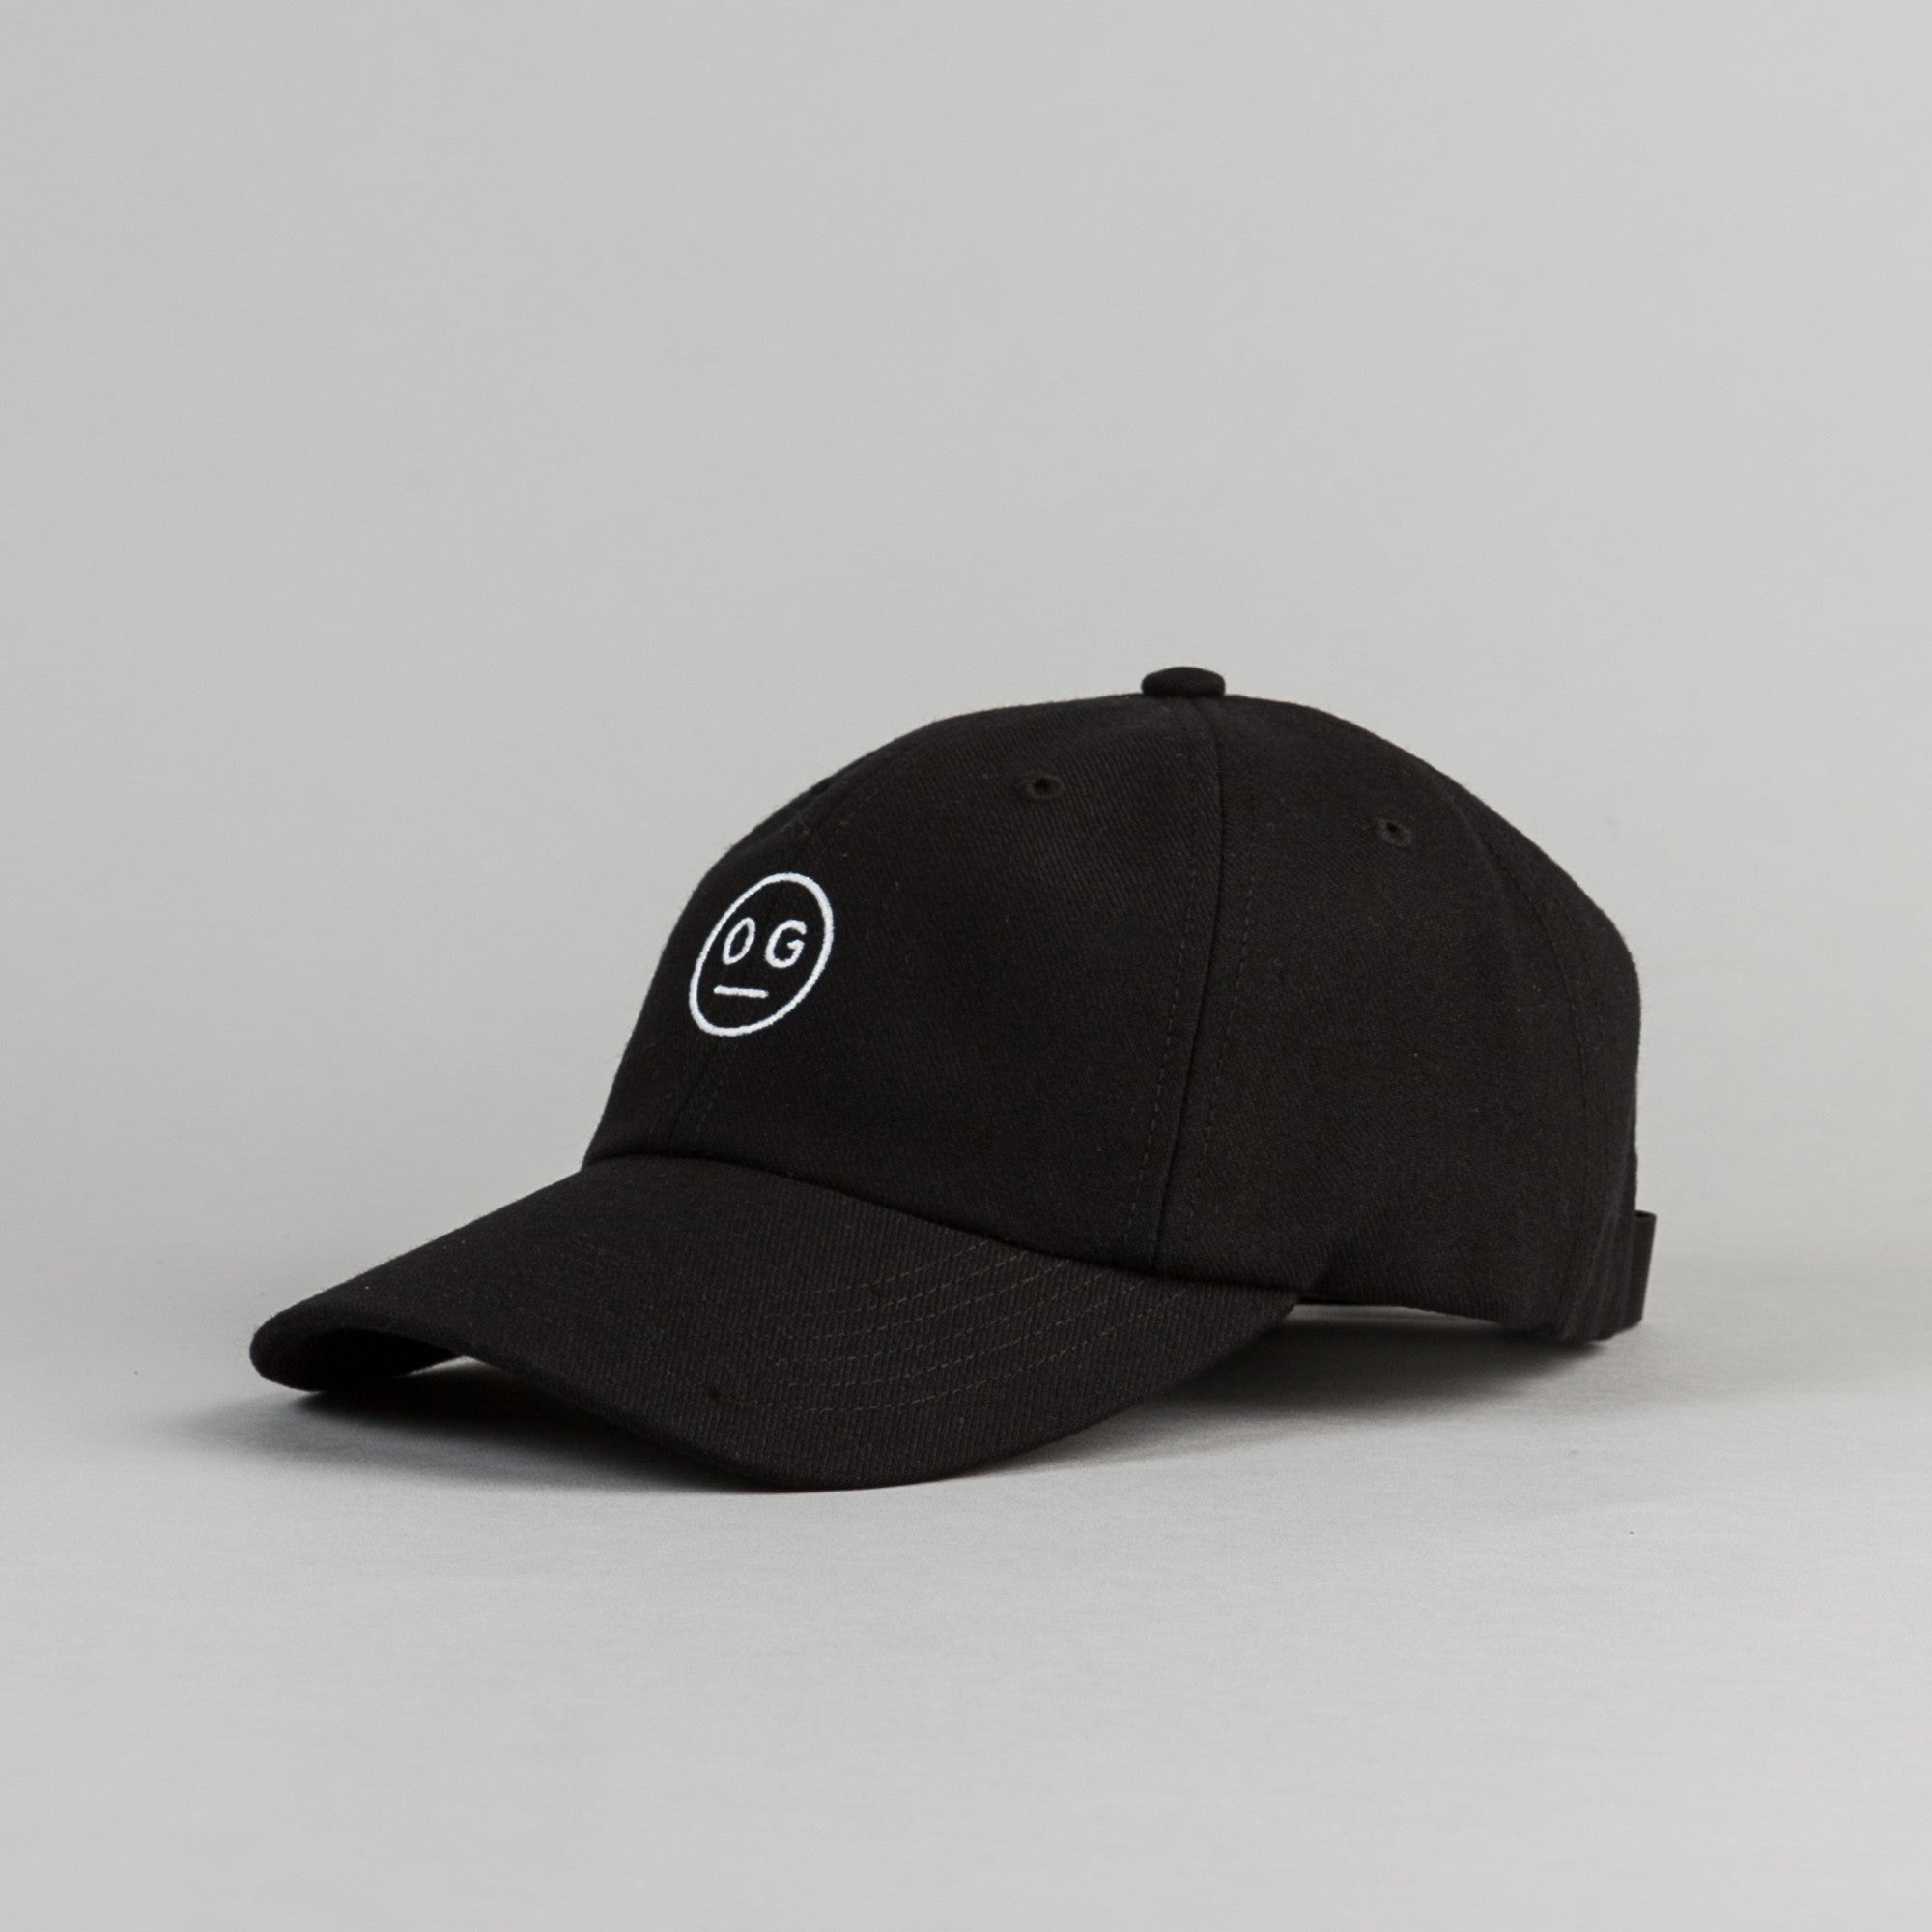 Flatspot OG Hardware Polo Cap - Black